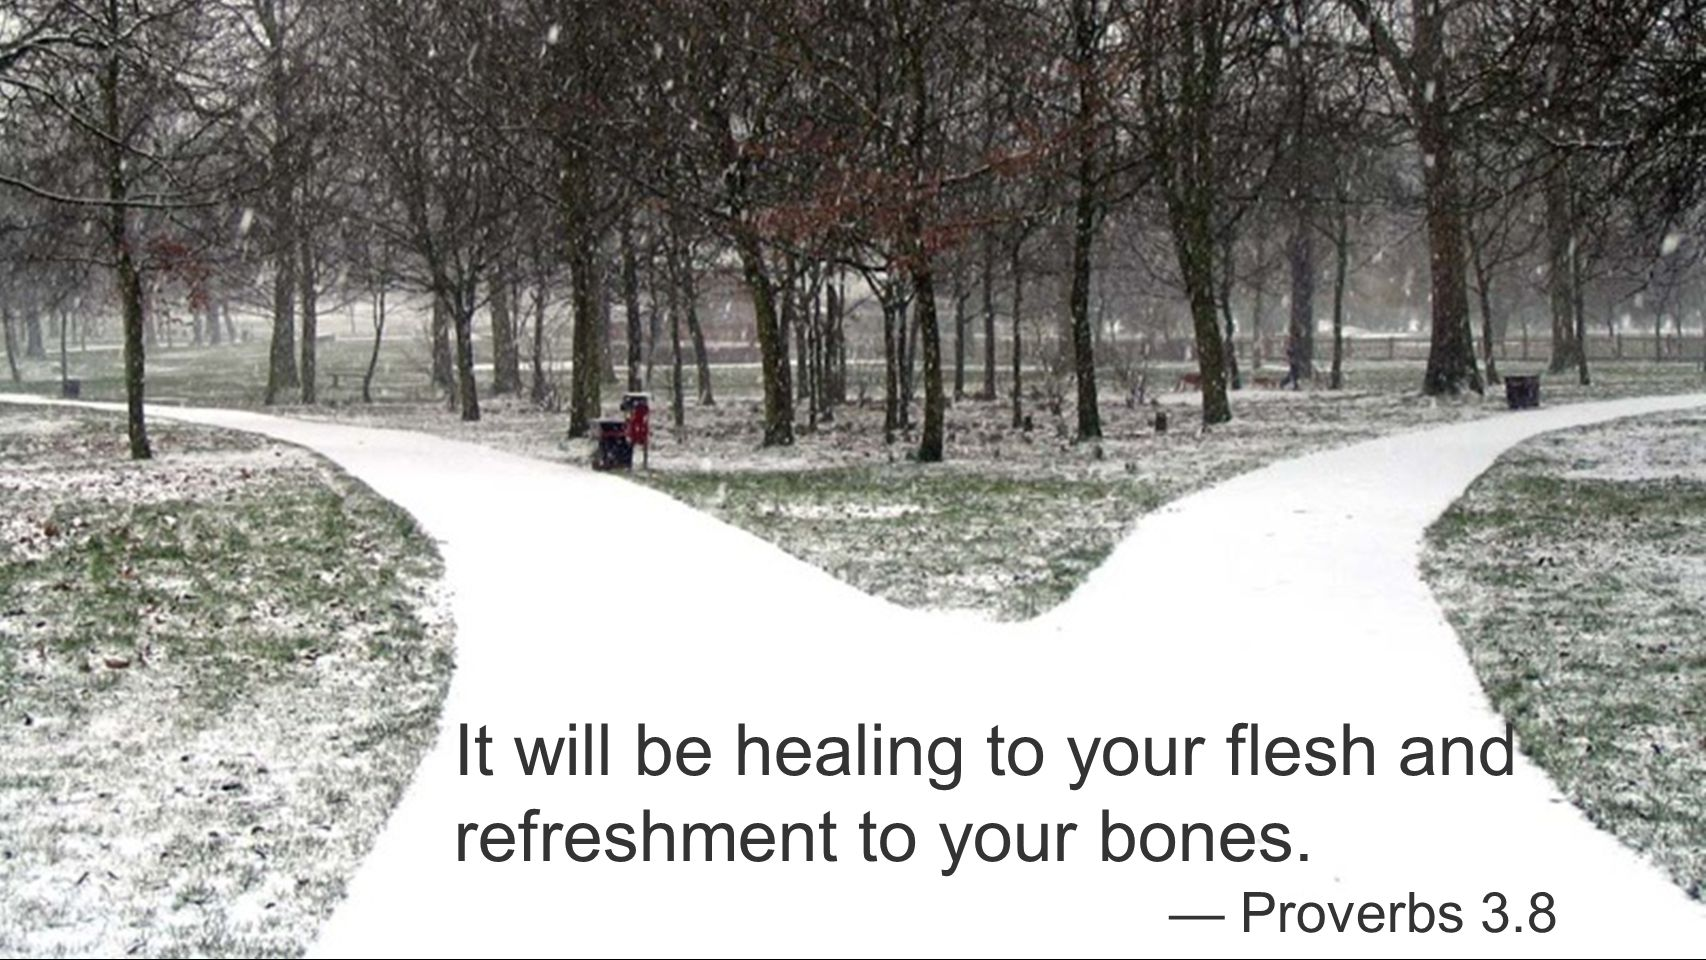 It will be healing to your flesh and refreshment to your bones. — Proverbs 3.8